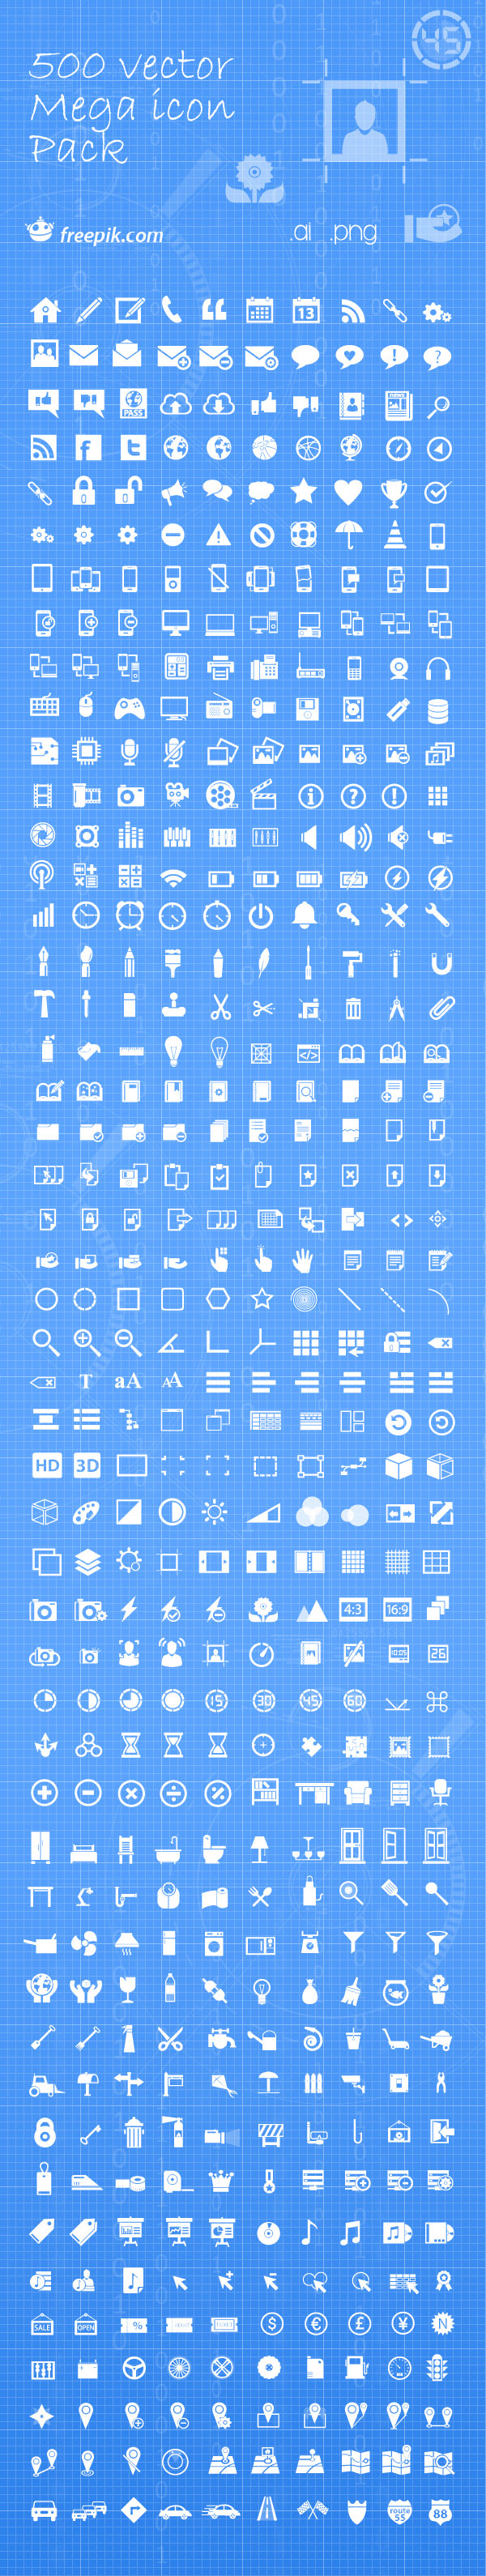 5-500-vector-mega-icon-pack